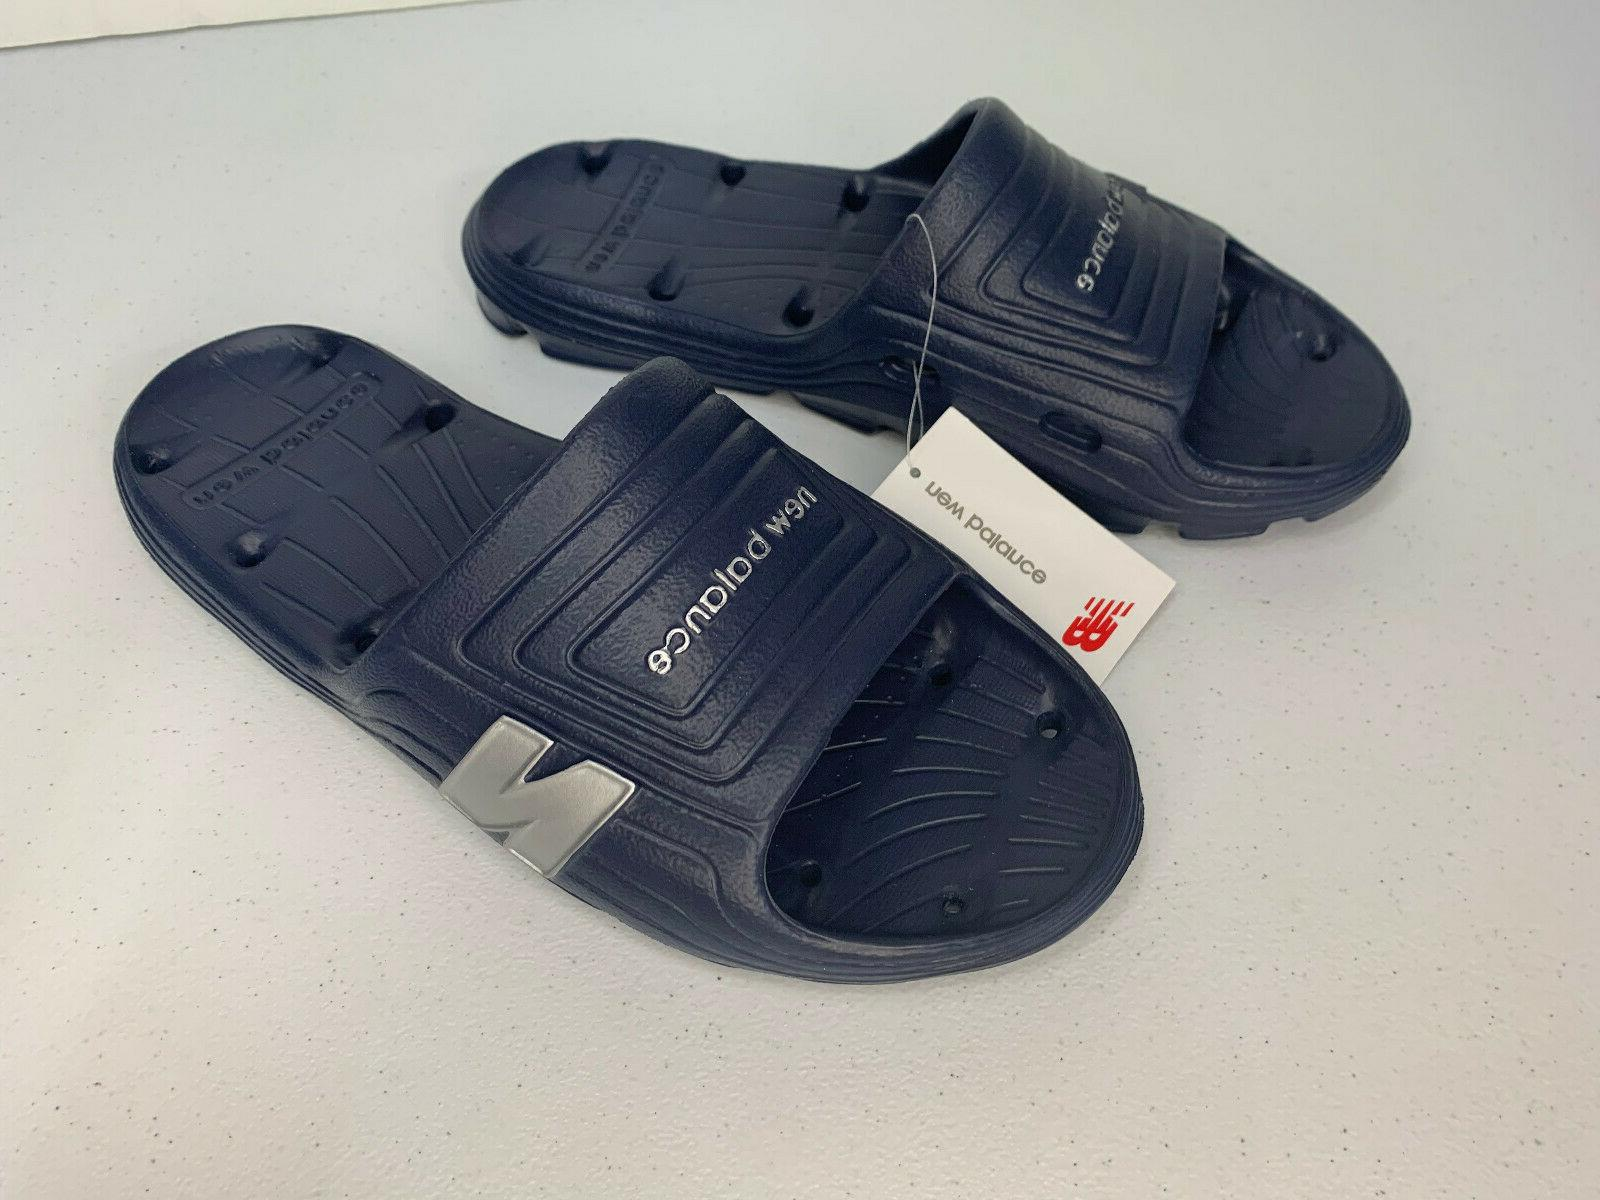 10 12 New Lightweight Slides